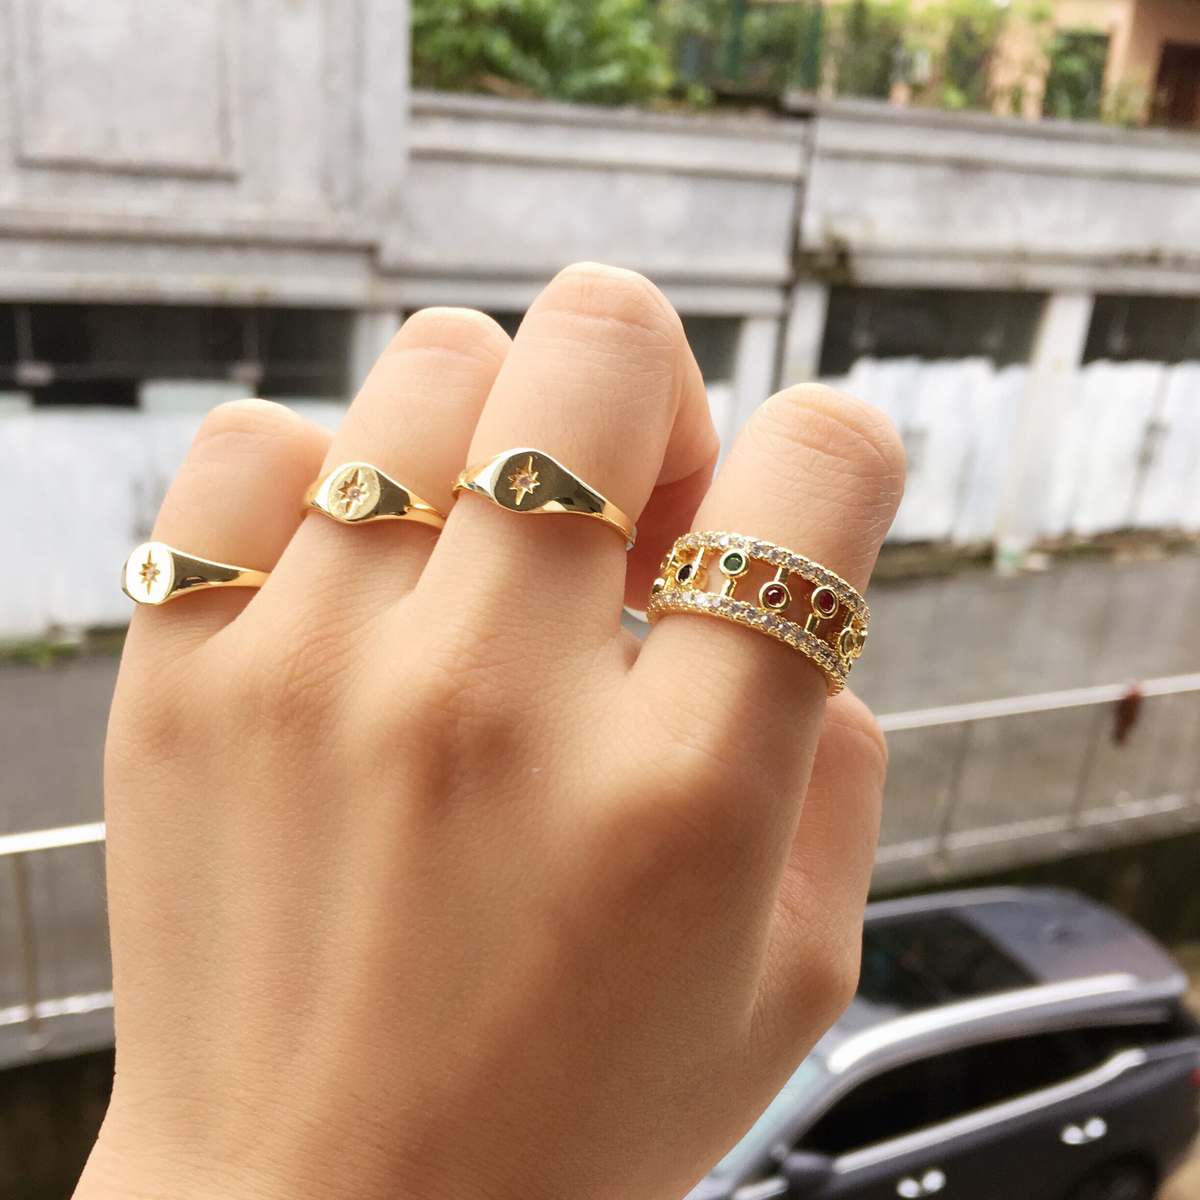 2018 hot fashion gold color simple cz star ring Midi Minimal paved cz delicate north star Top quality cute elegant girls jewelry(China)